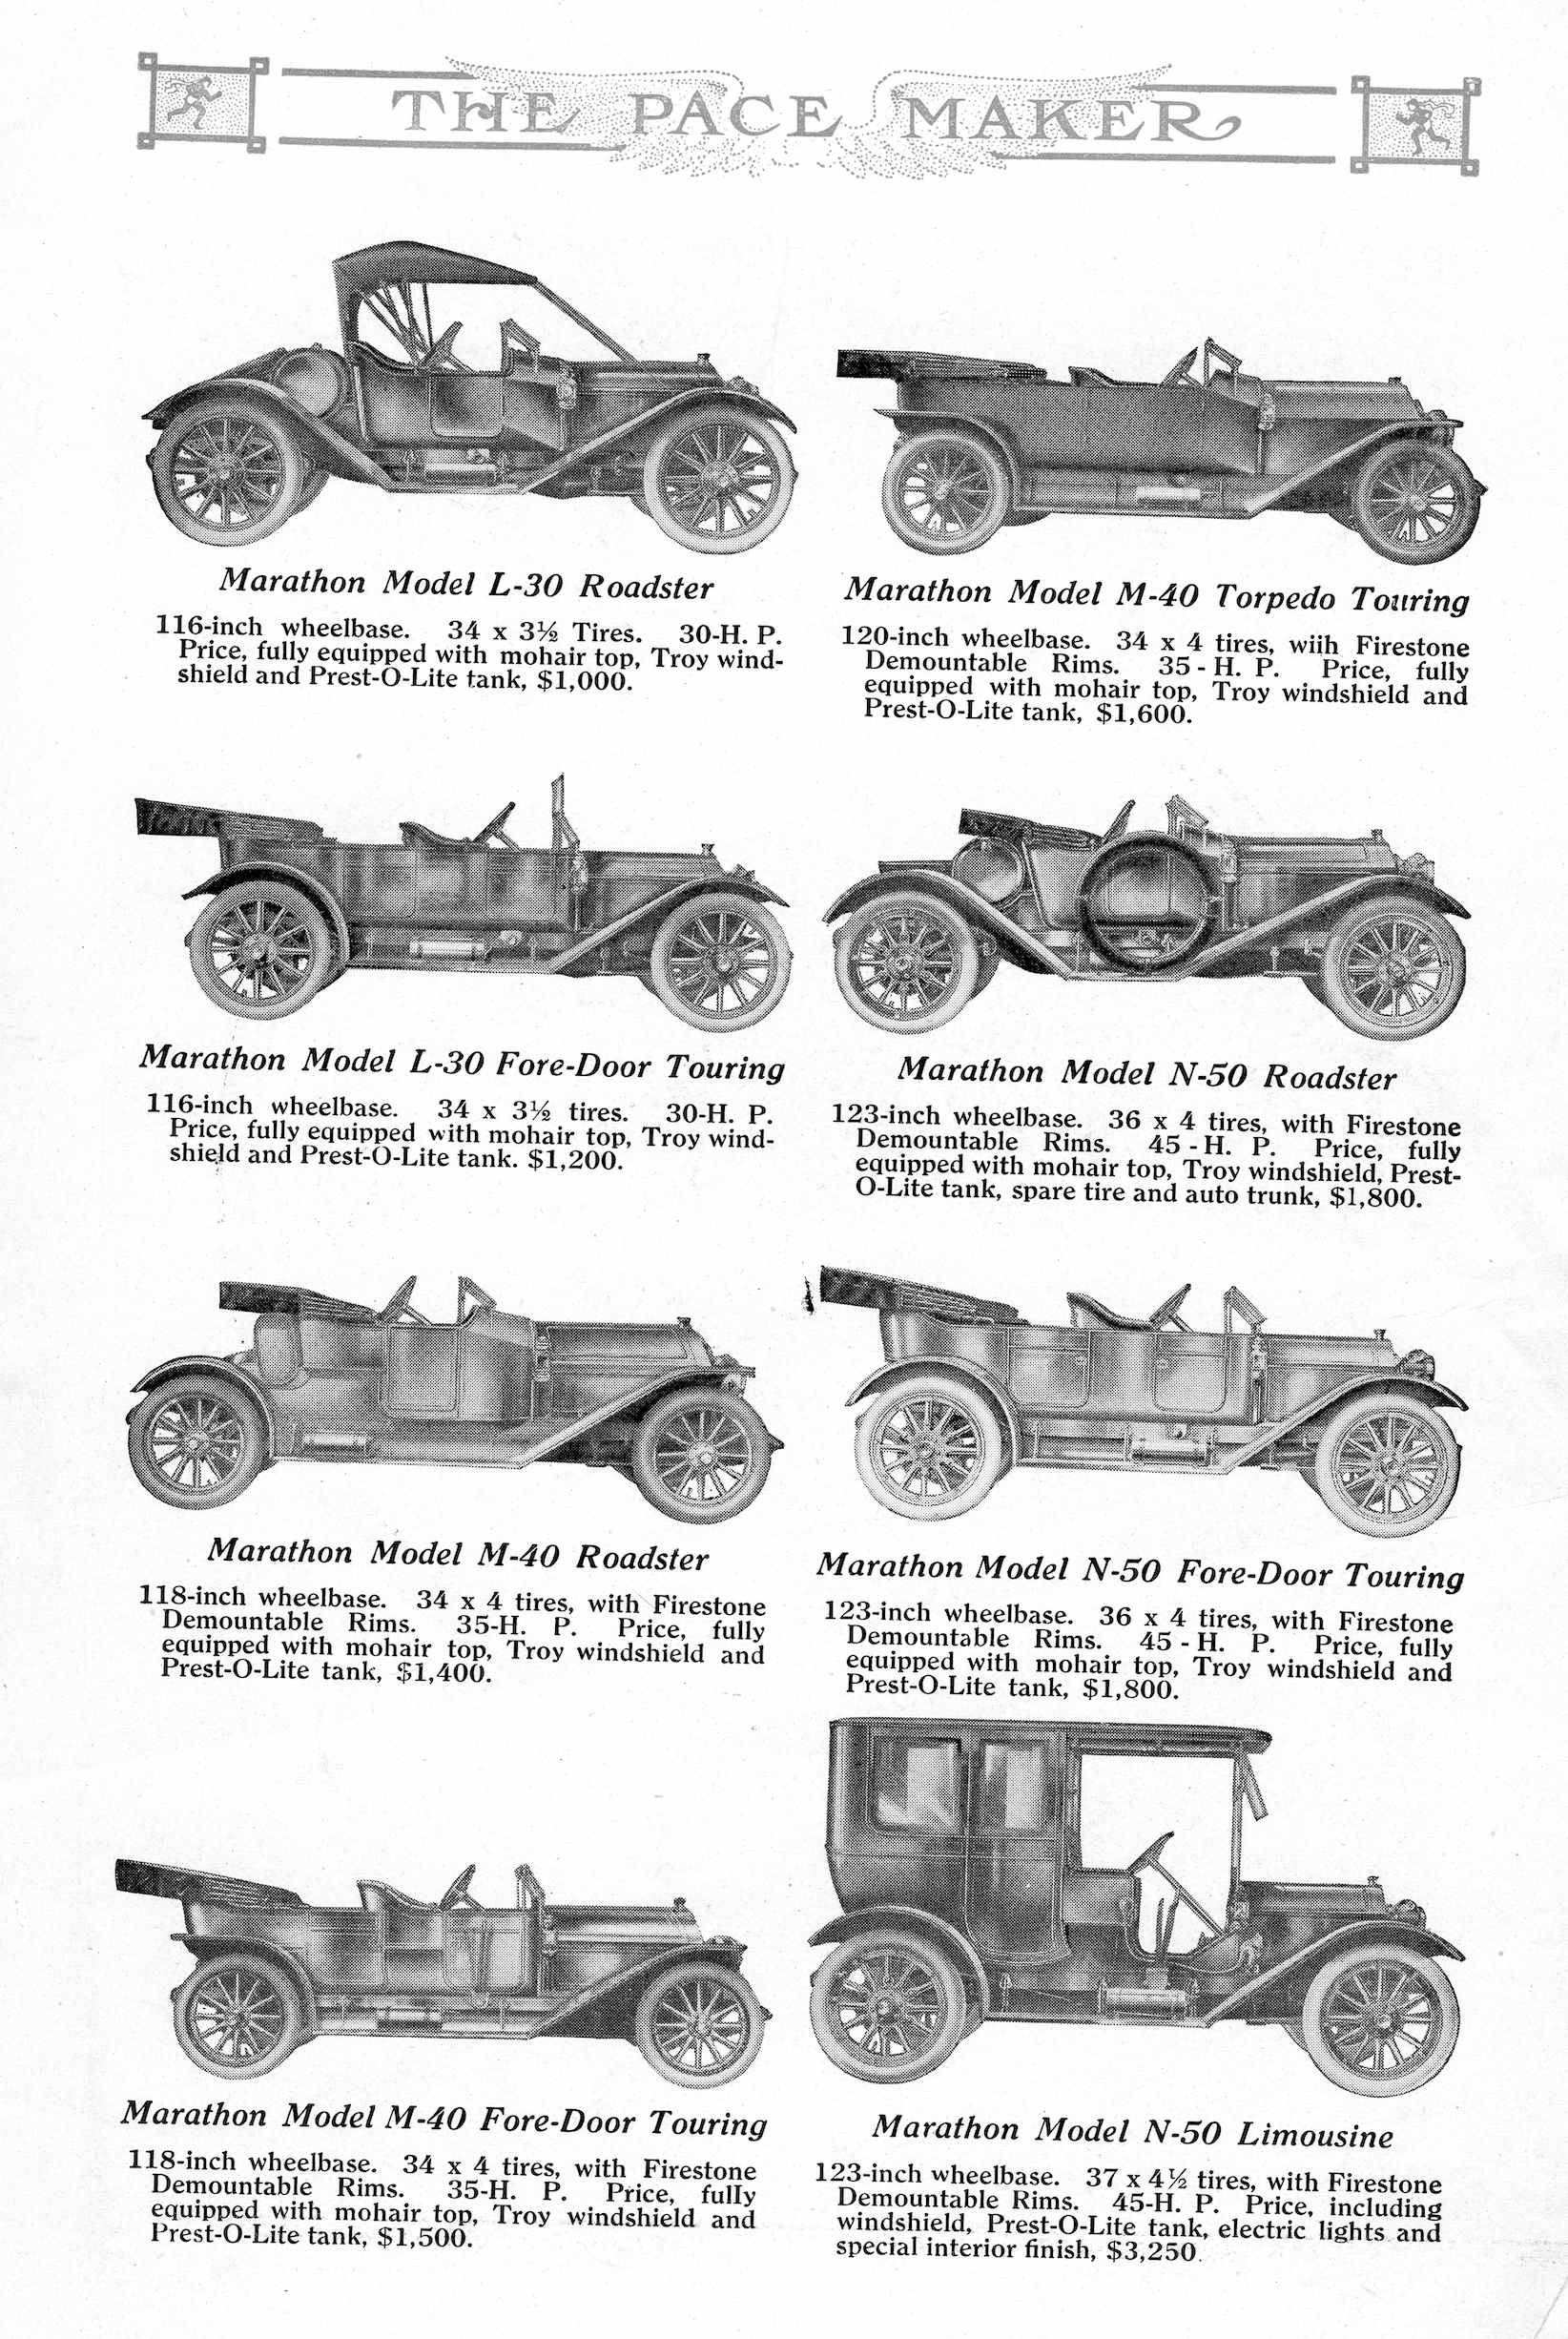 Pin By Barry Walker On Marathon Motor Works In 2020 Marathon Motors Motor Works Motor